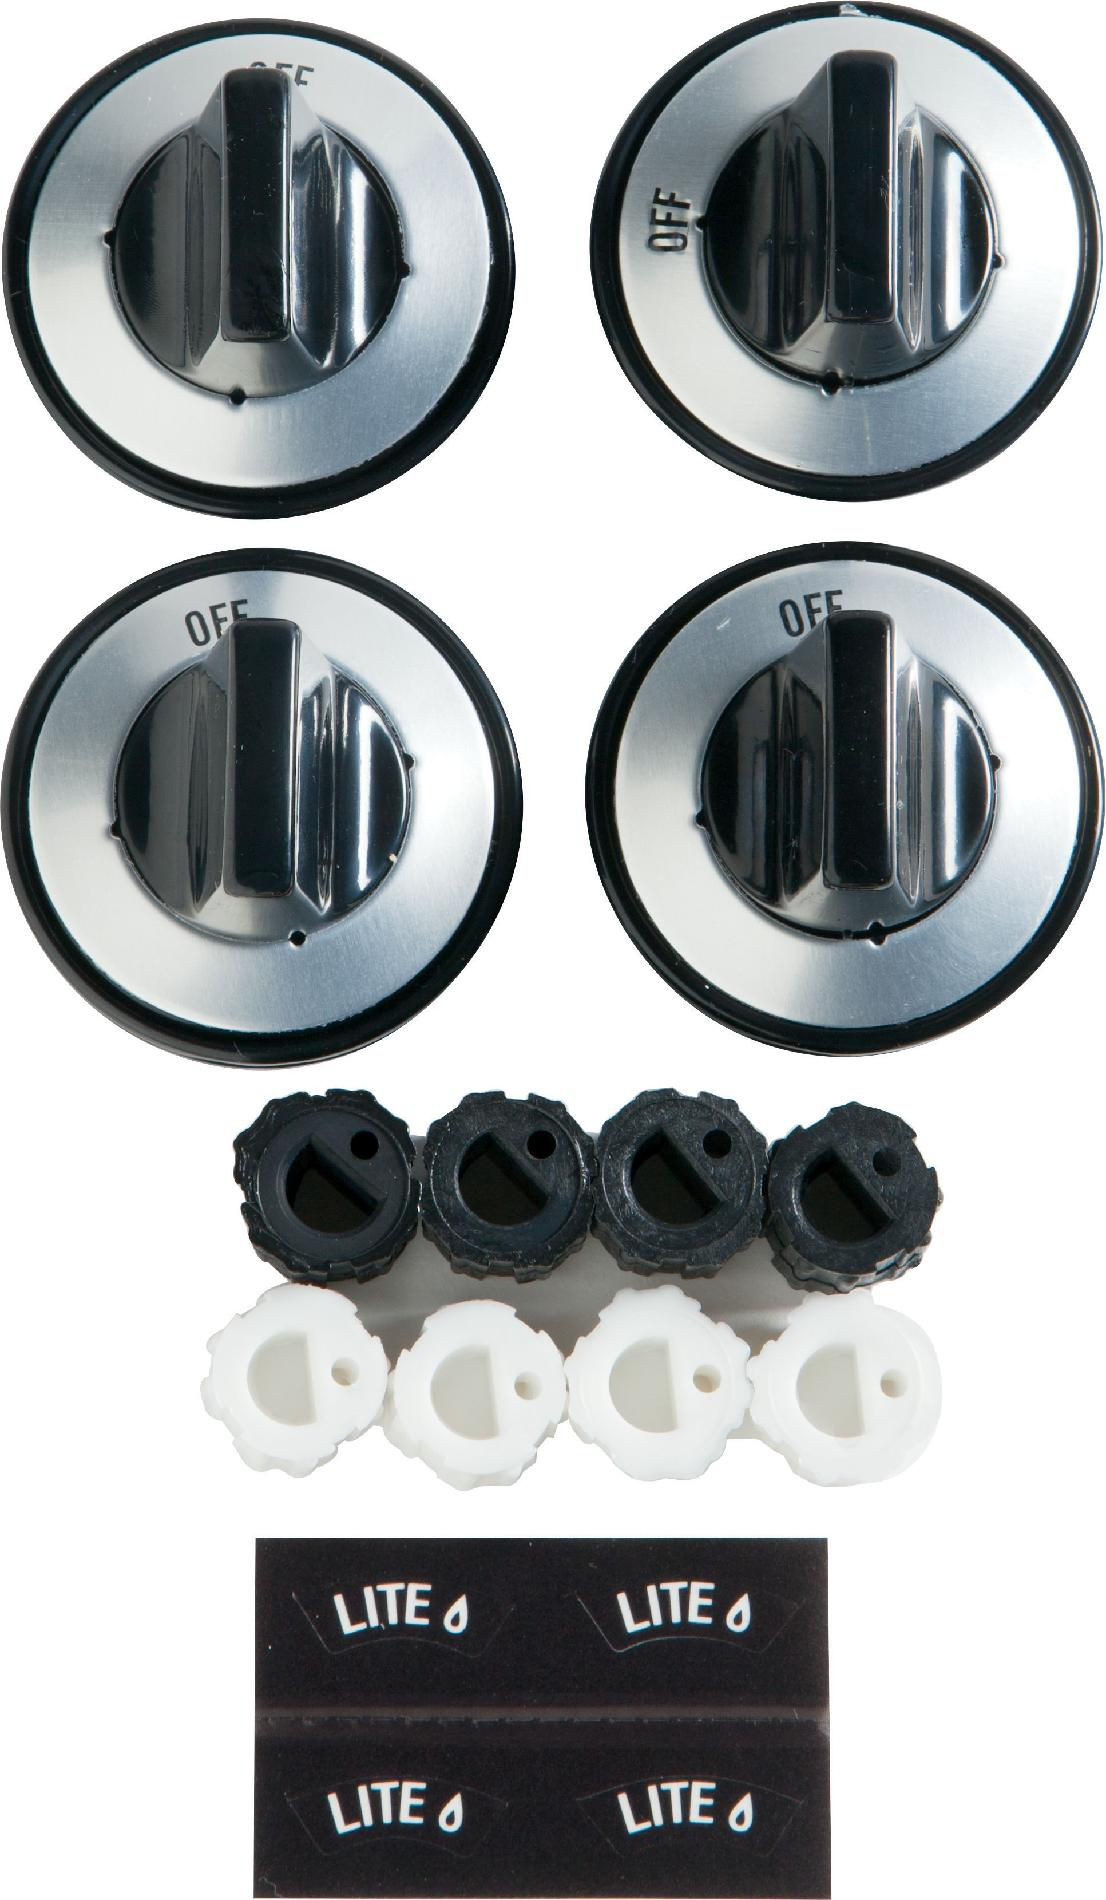 Gas Cooktop Installation Cost Ge Appliances Pm3x88ds Partsmaster Gas Burner Knobs 4 Pack